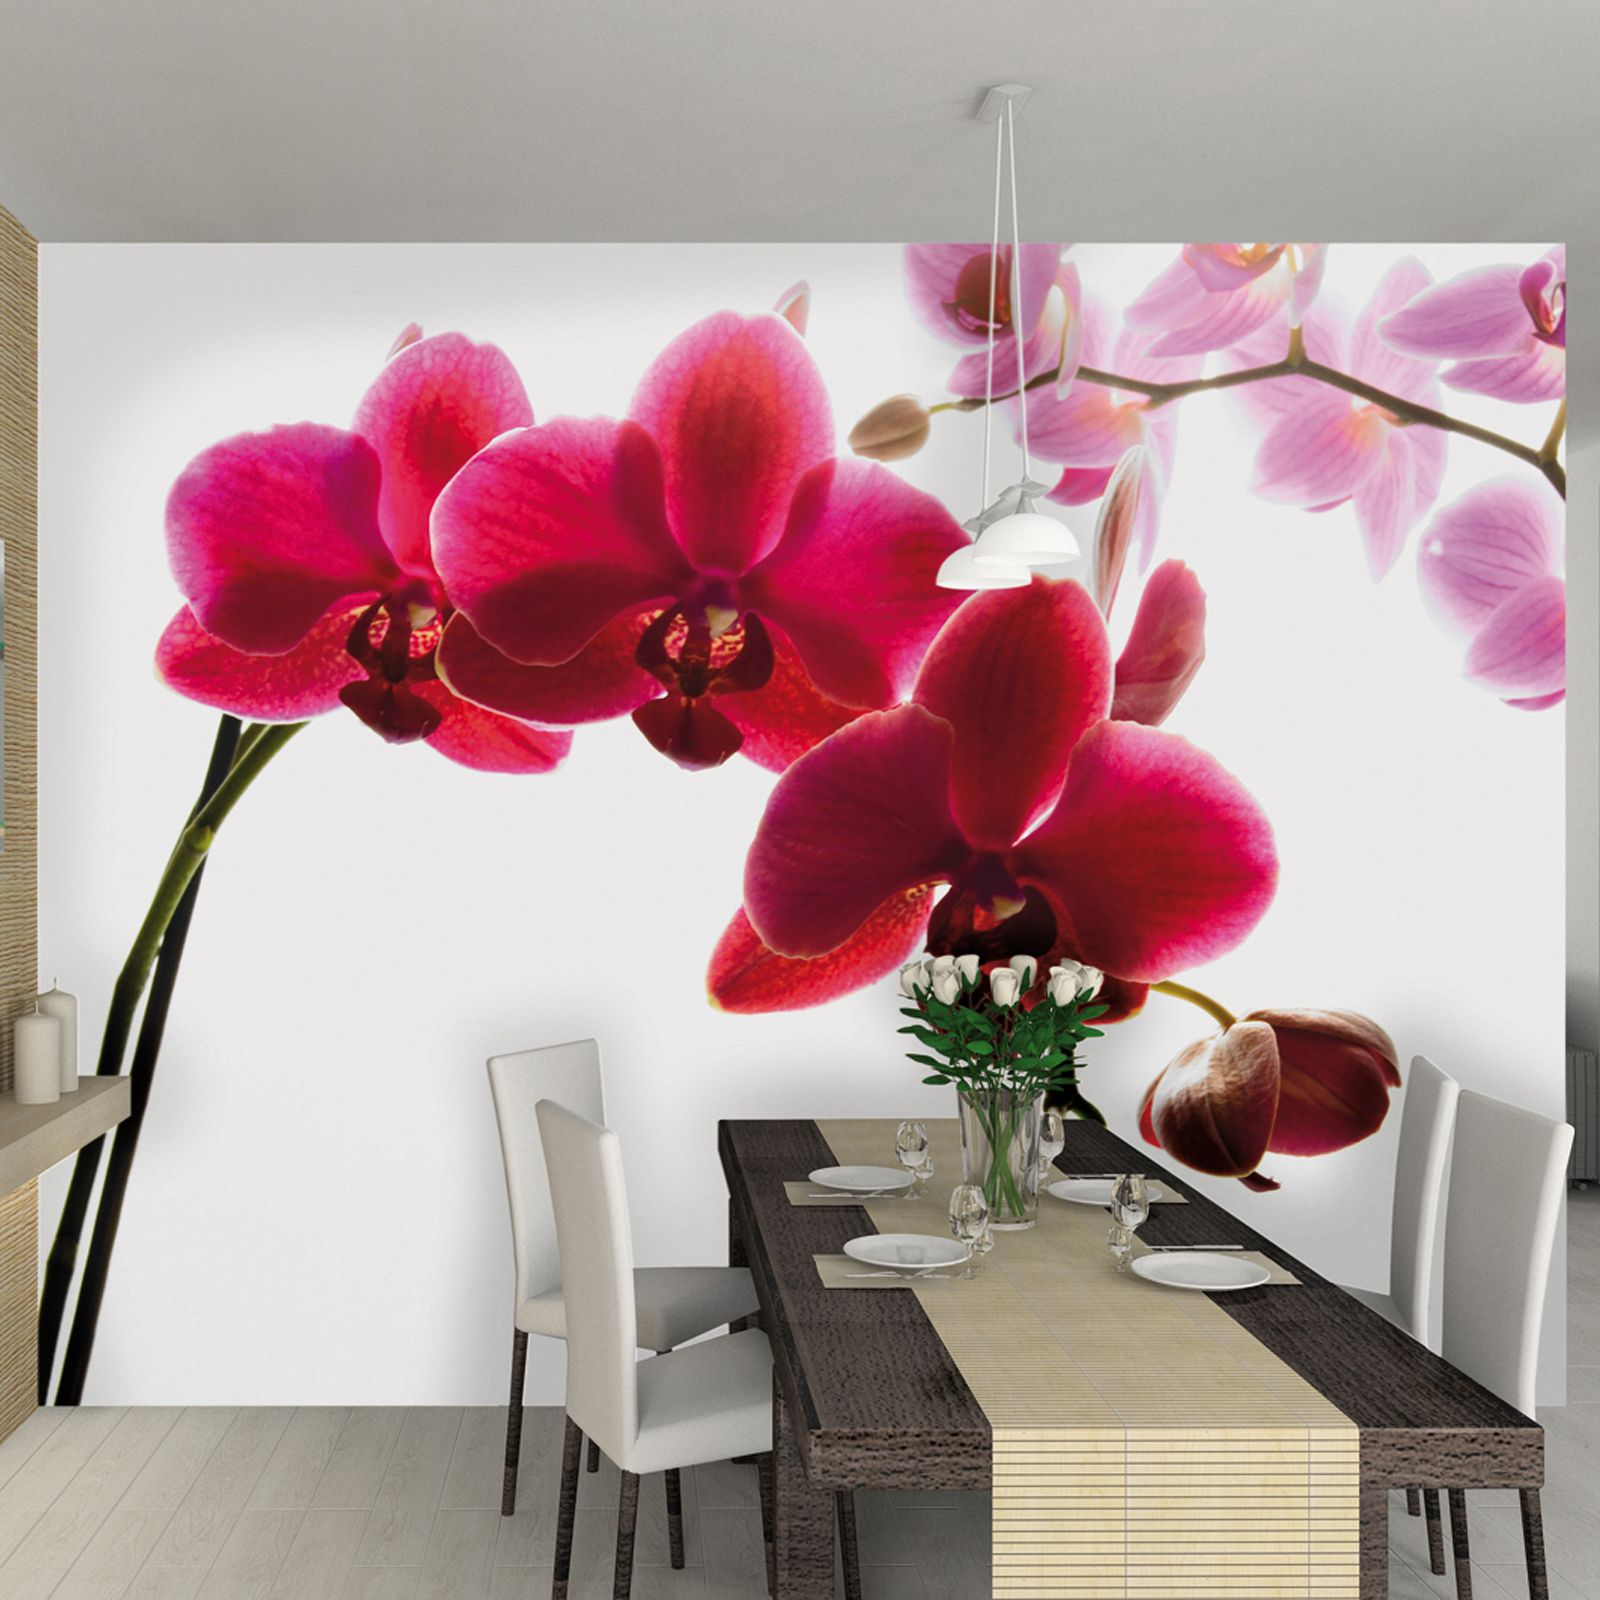 Déco Murale Diy Details About Orchid Flower Wallpaper Wall Mural 2 32m X 3 15m New